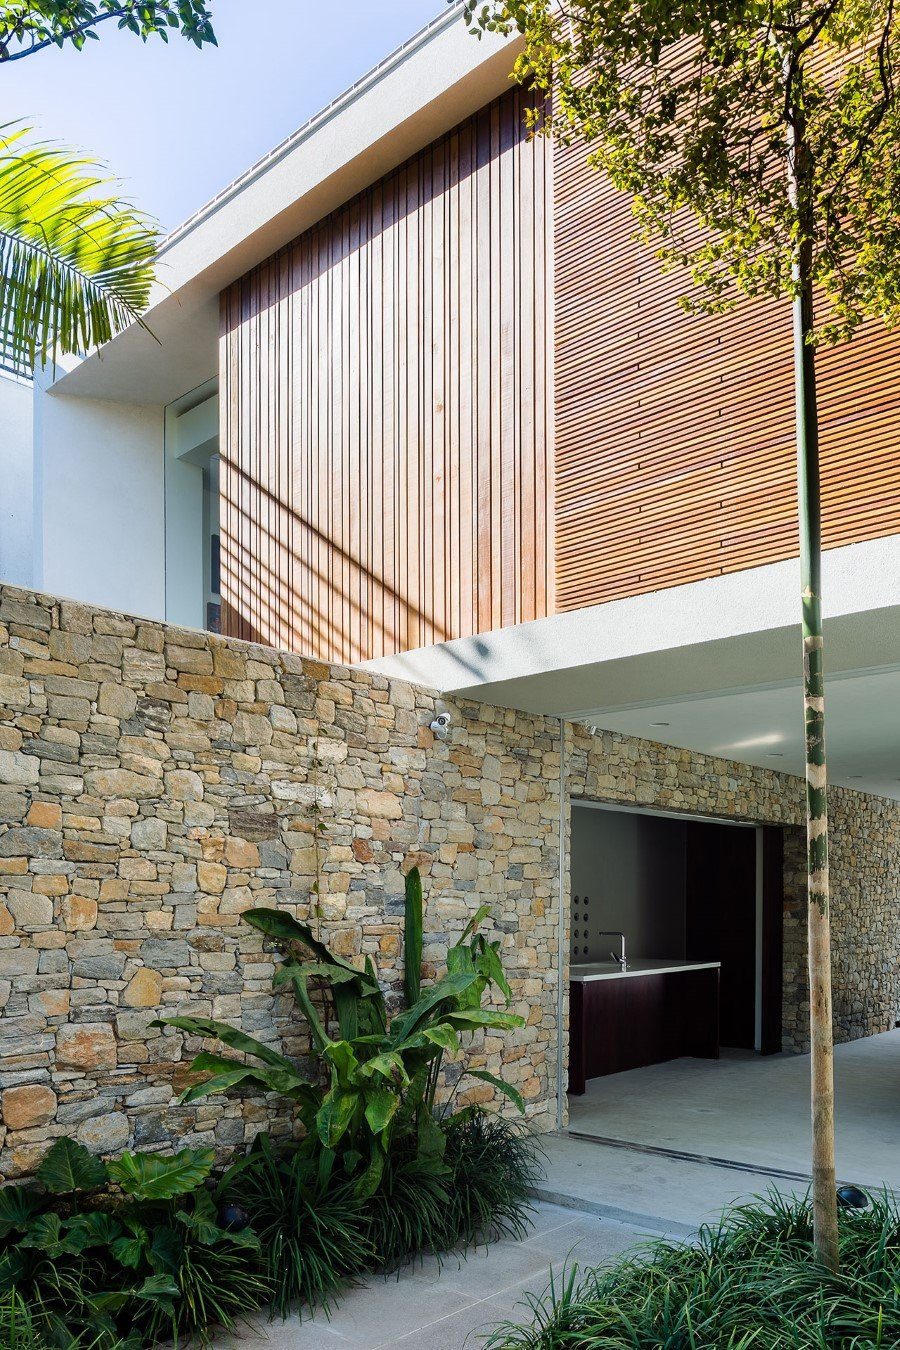 Lara House is a generous and light-filled home in Sao Paulo - by Felipe Hess (2)